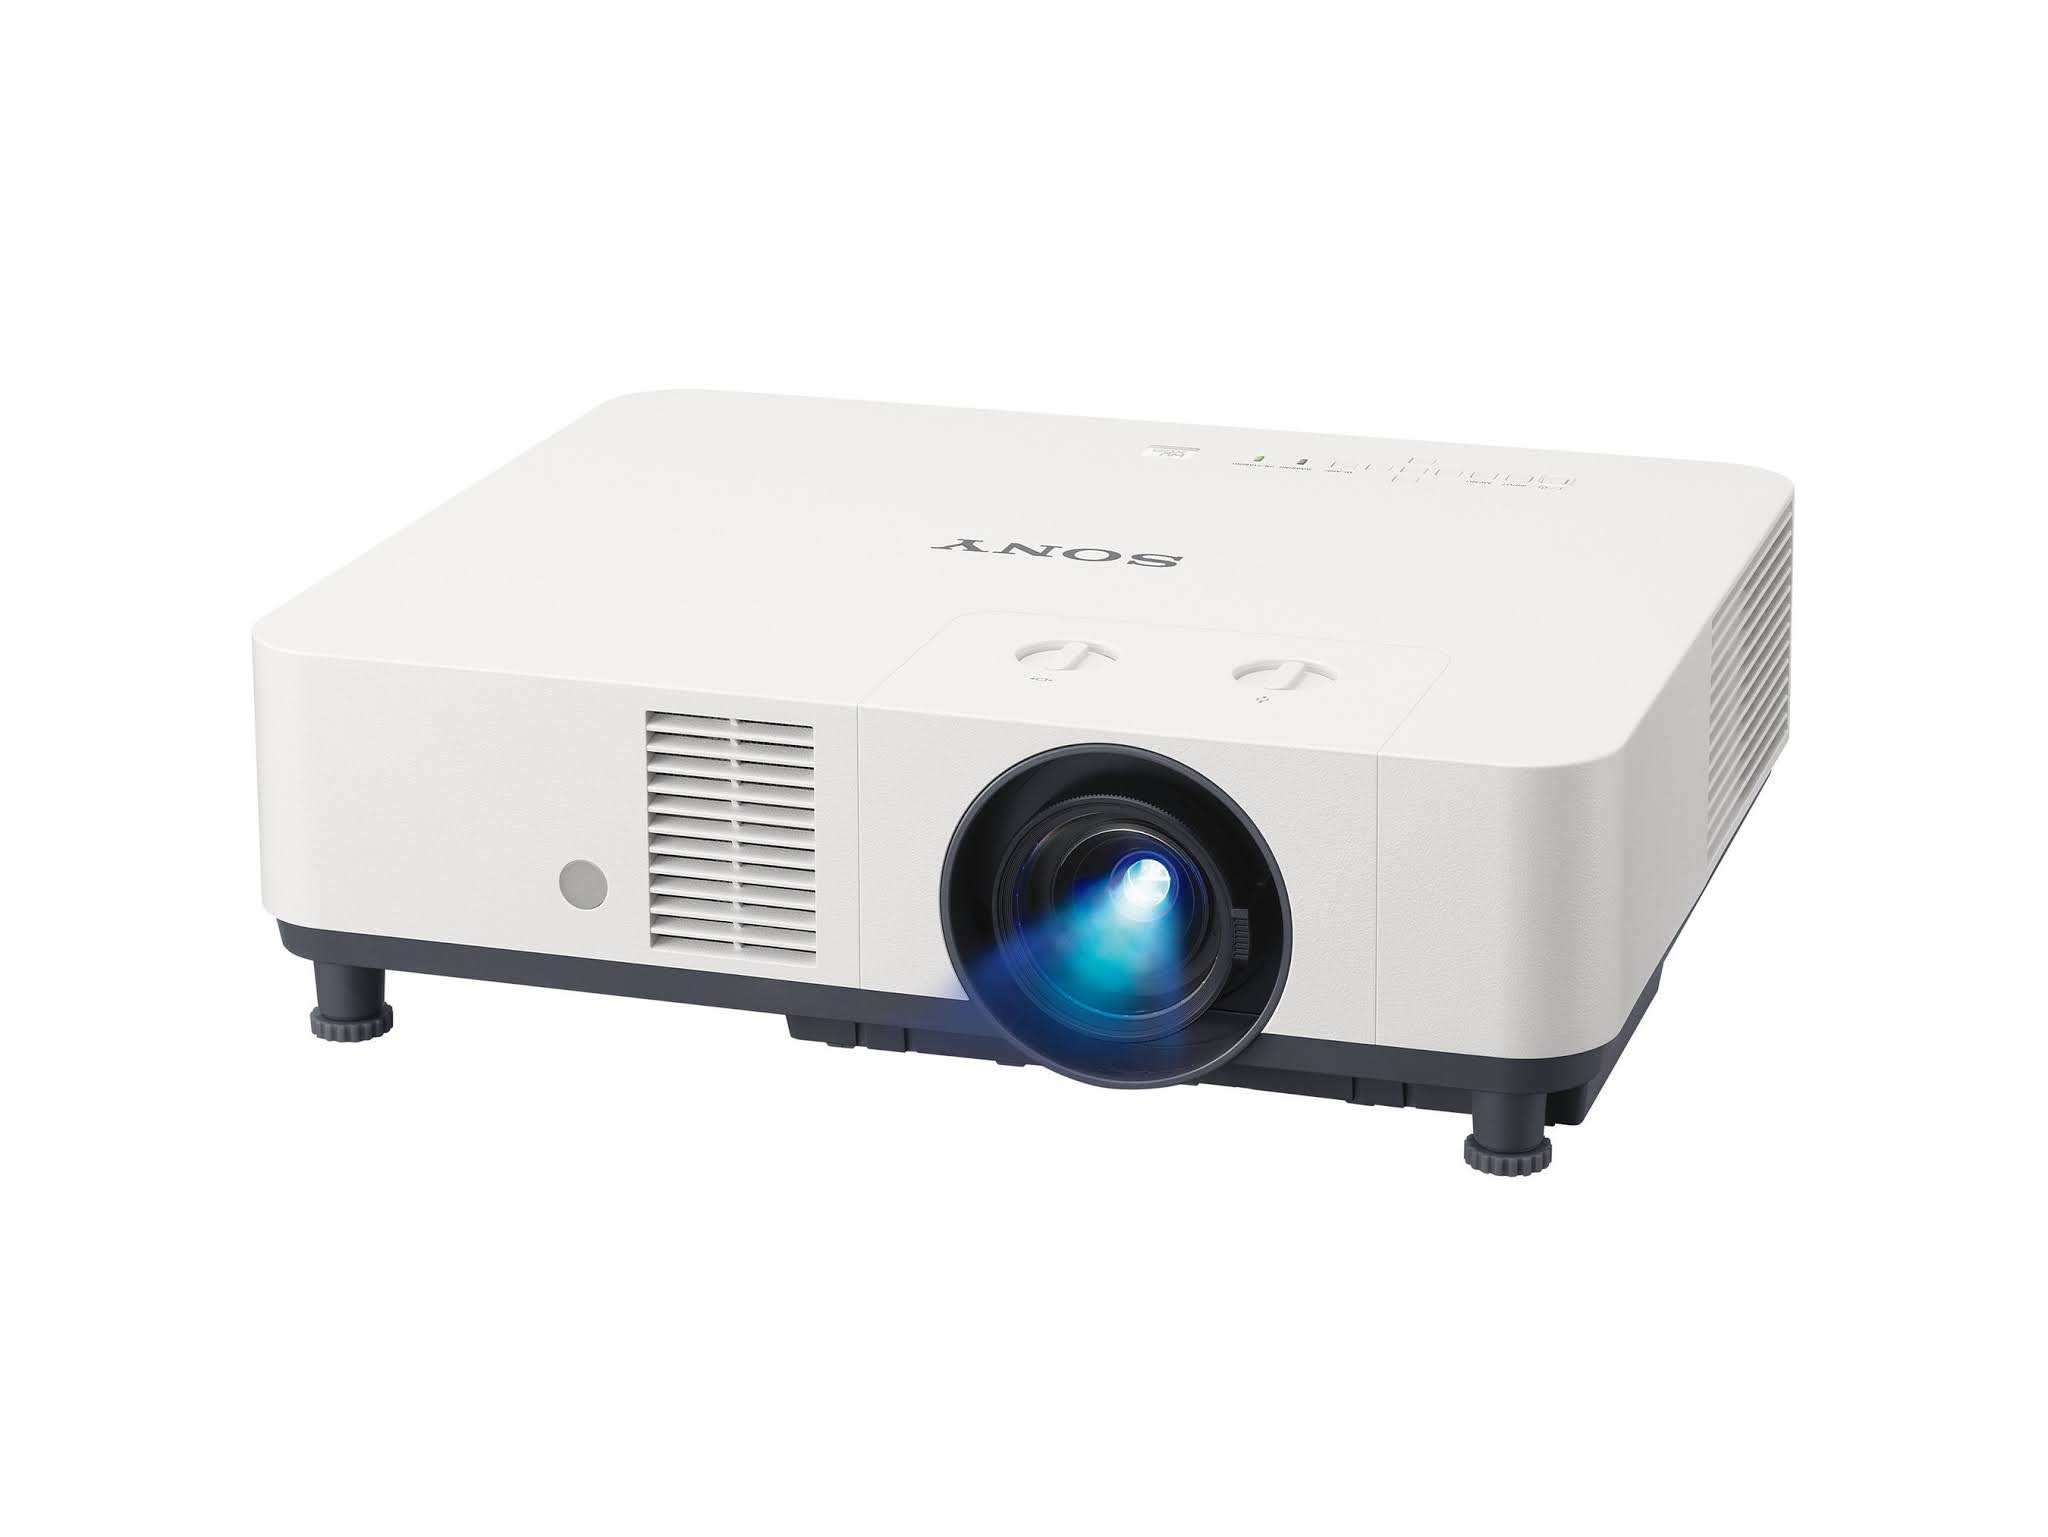 Sony Expands Laser Projector Lineup with Two New Compact and High Image Quality Models